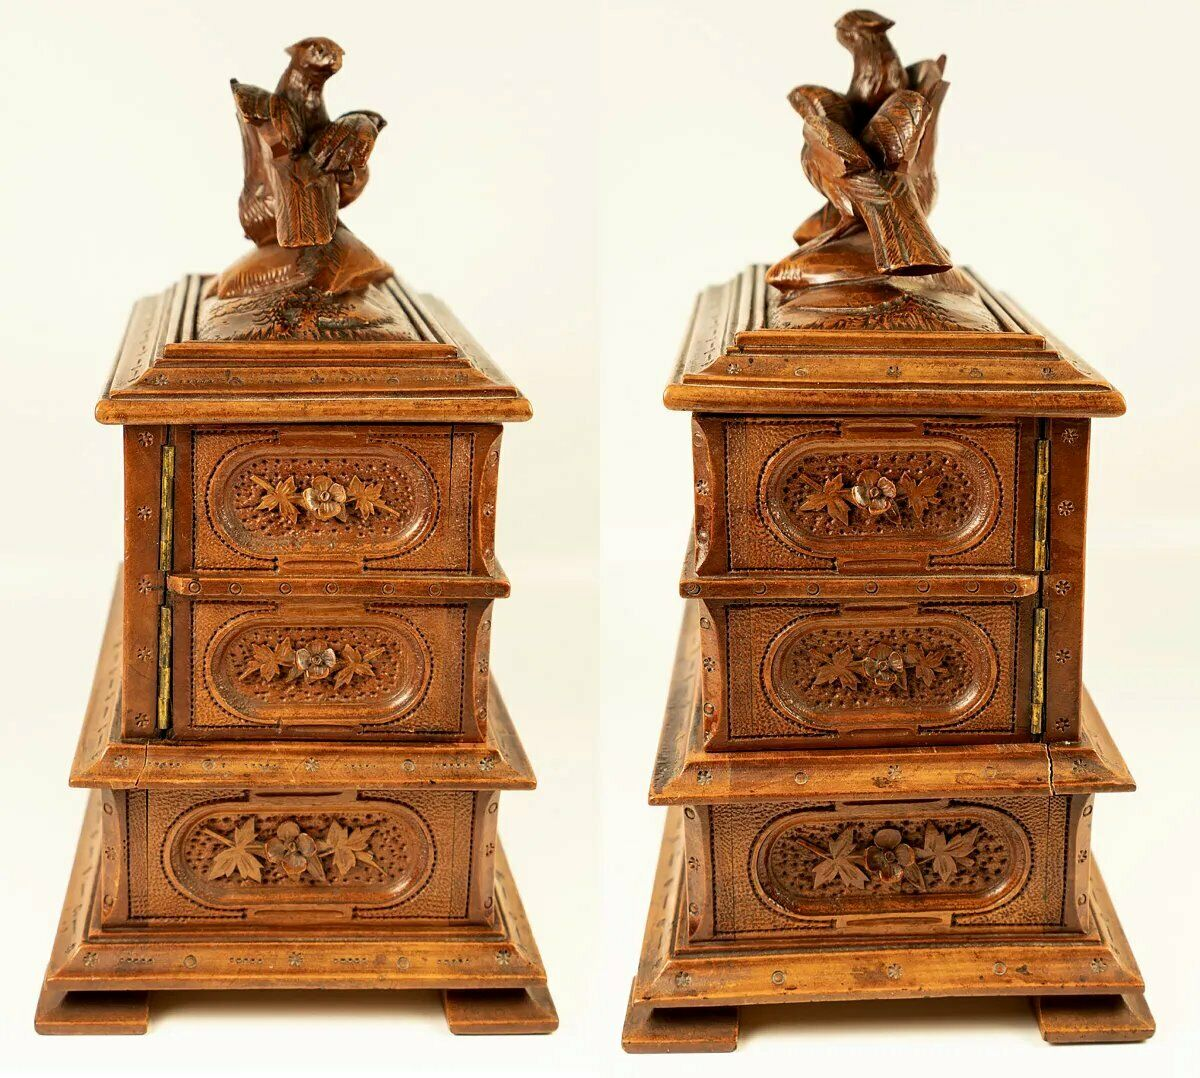 Antique Black Forest Carved Jewelry Chest, 3-Tier Box, Hunt Theme Bird Figures